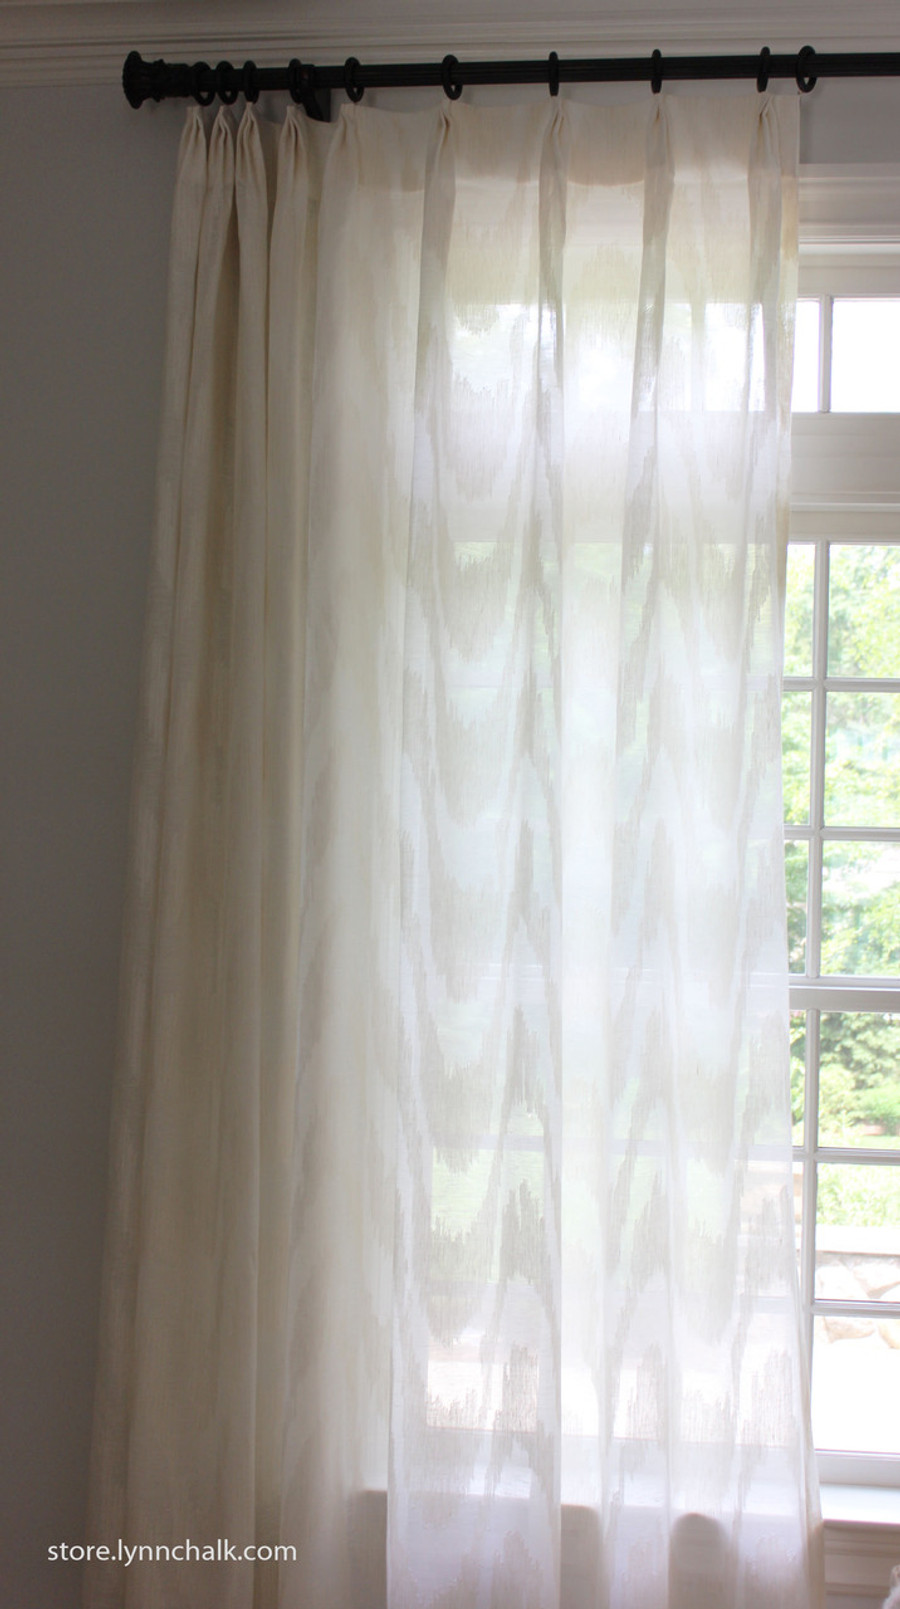 Custom Sheer Drapes by Lynn Chalk in Cowtan & Tout Marina in Ecru